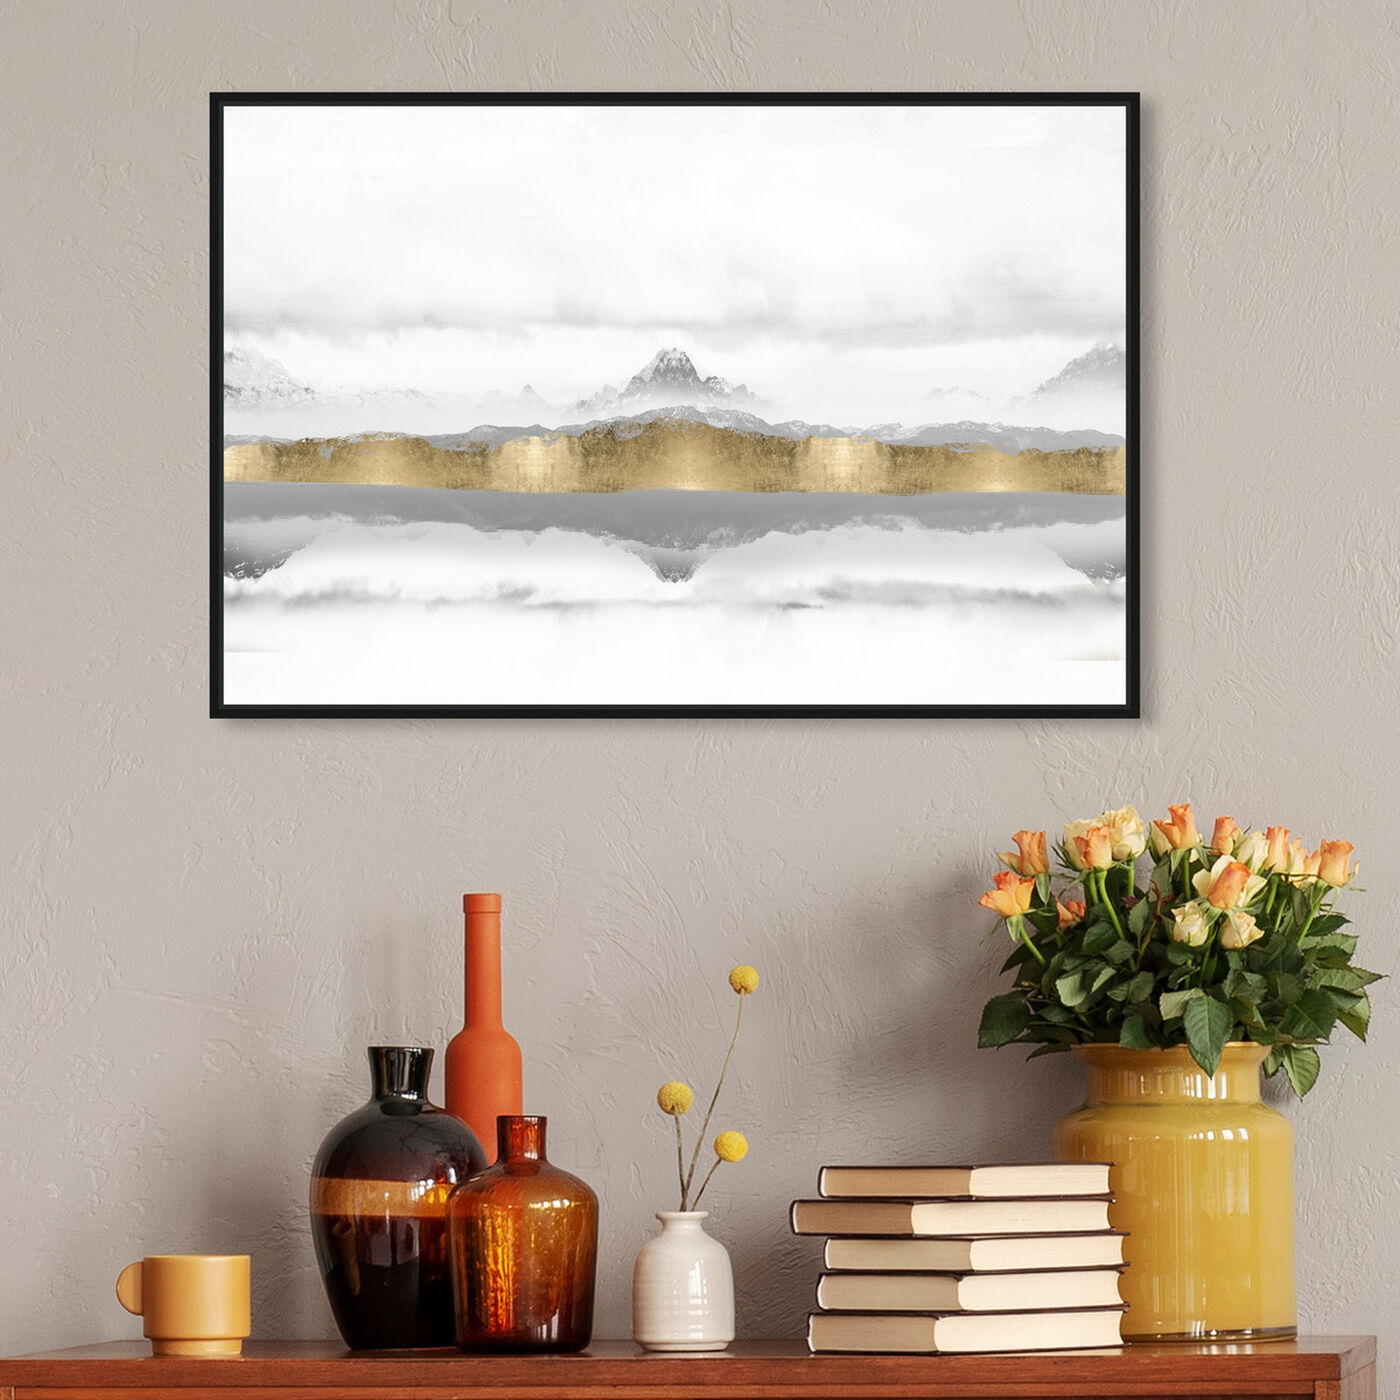 Hanging view of Mountain of the Heart featuring abstract and textures art.